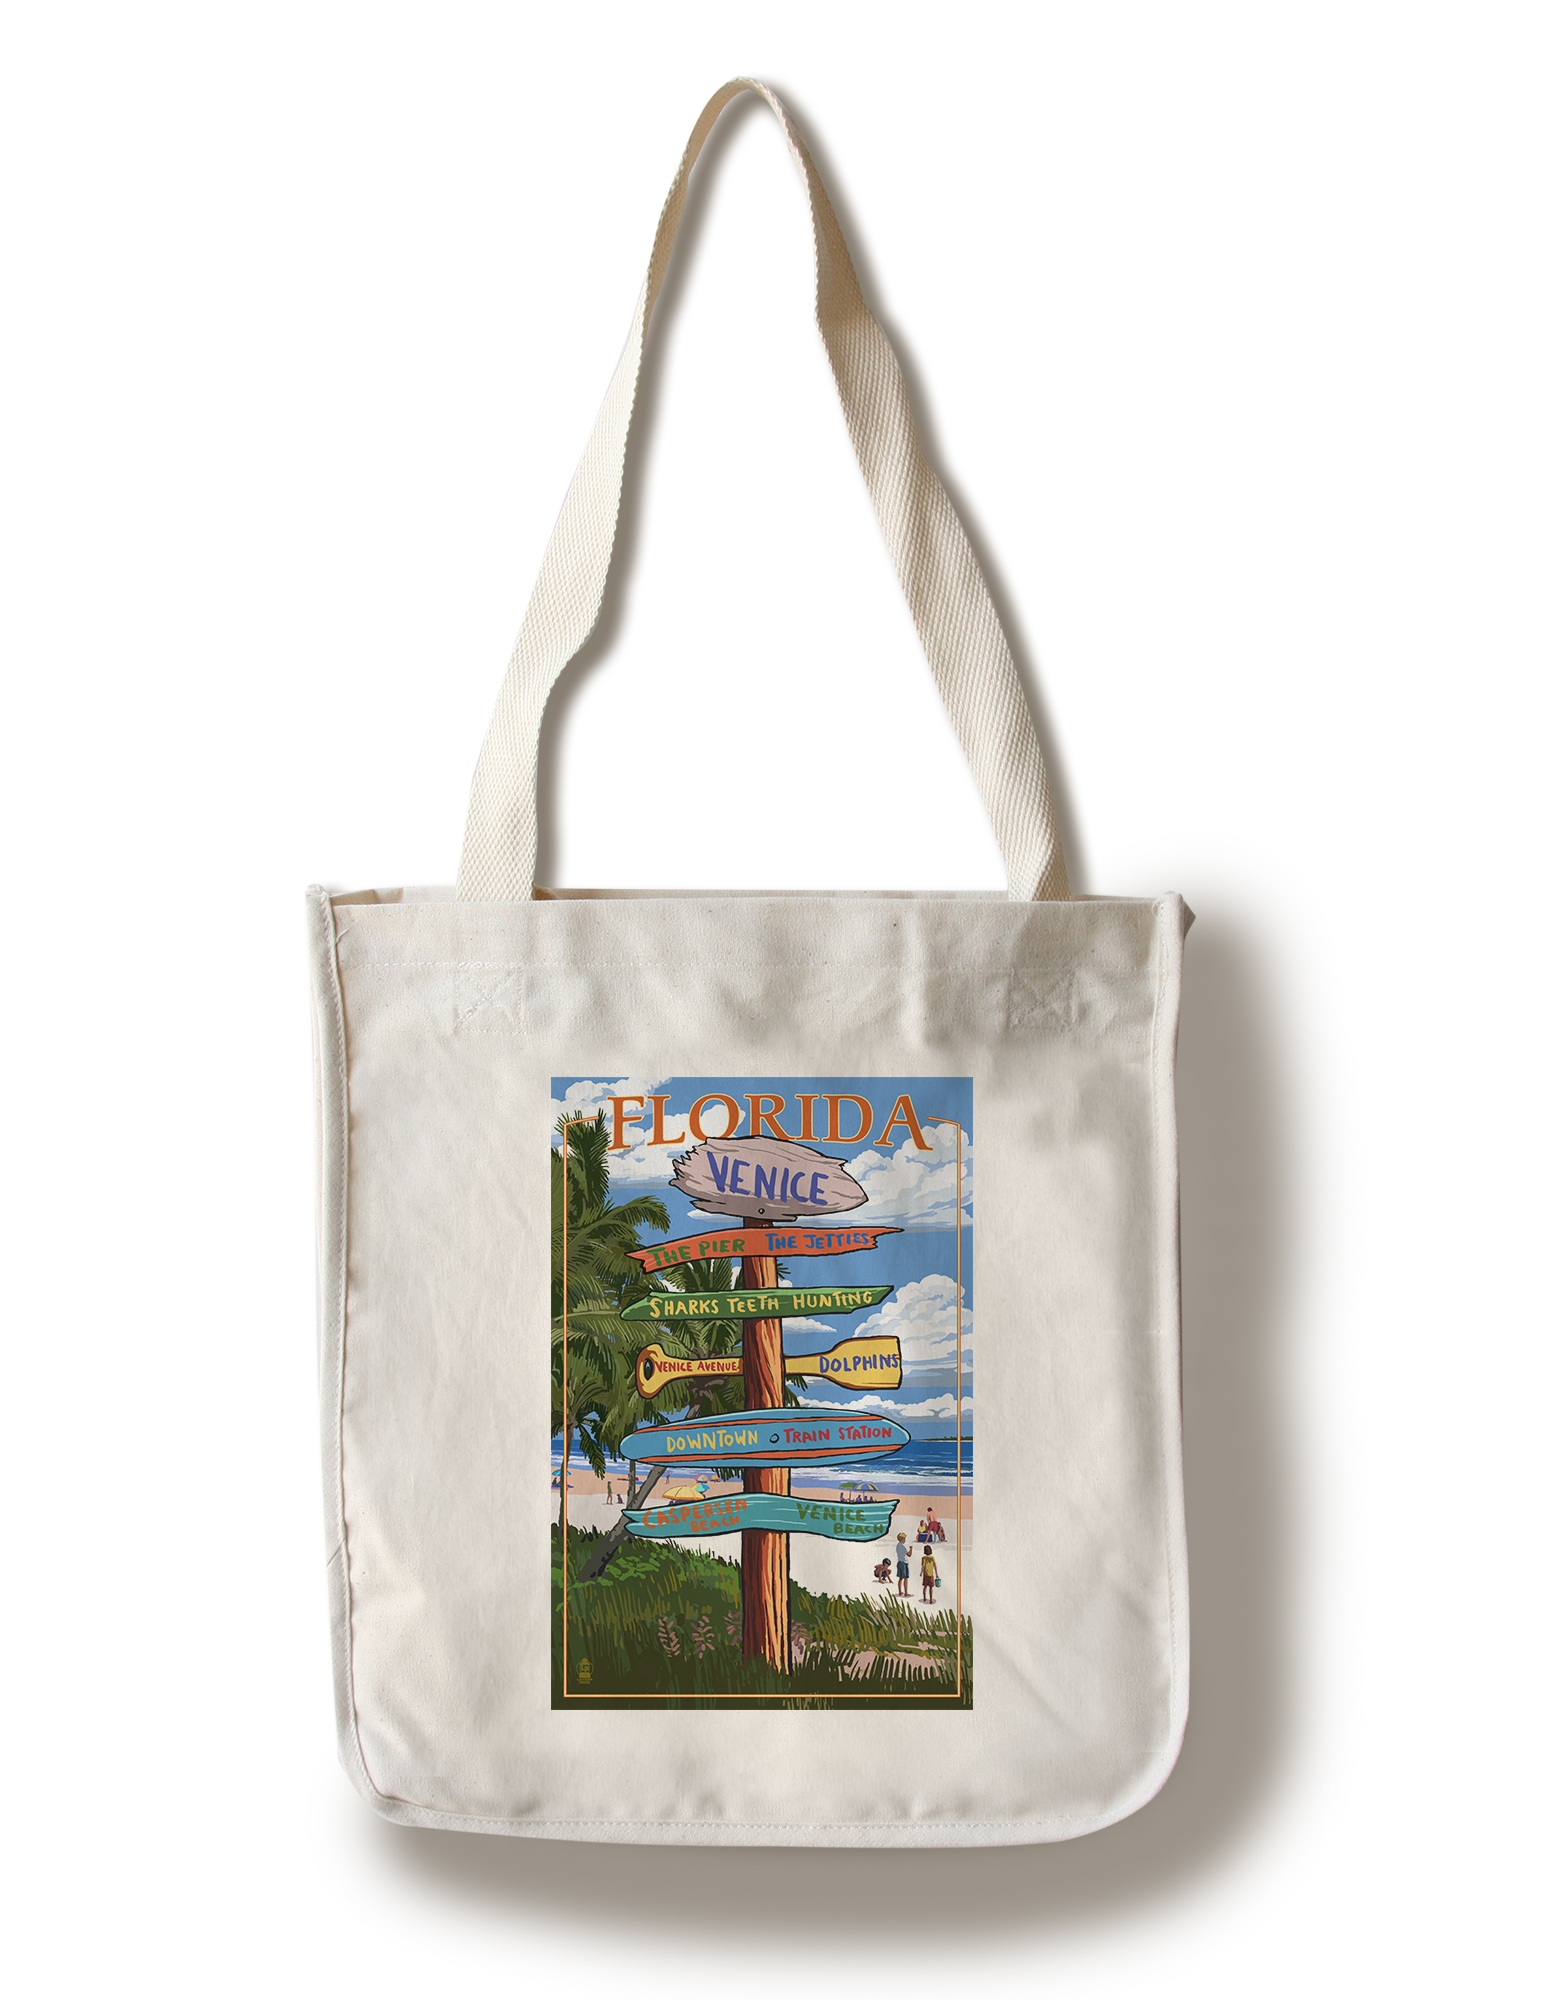 Venice, Florida Sign Post Lantern Press Artwork (100% Cotton Tote Bag Reusable) by Lantern Press